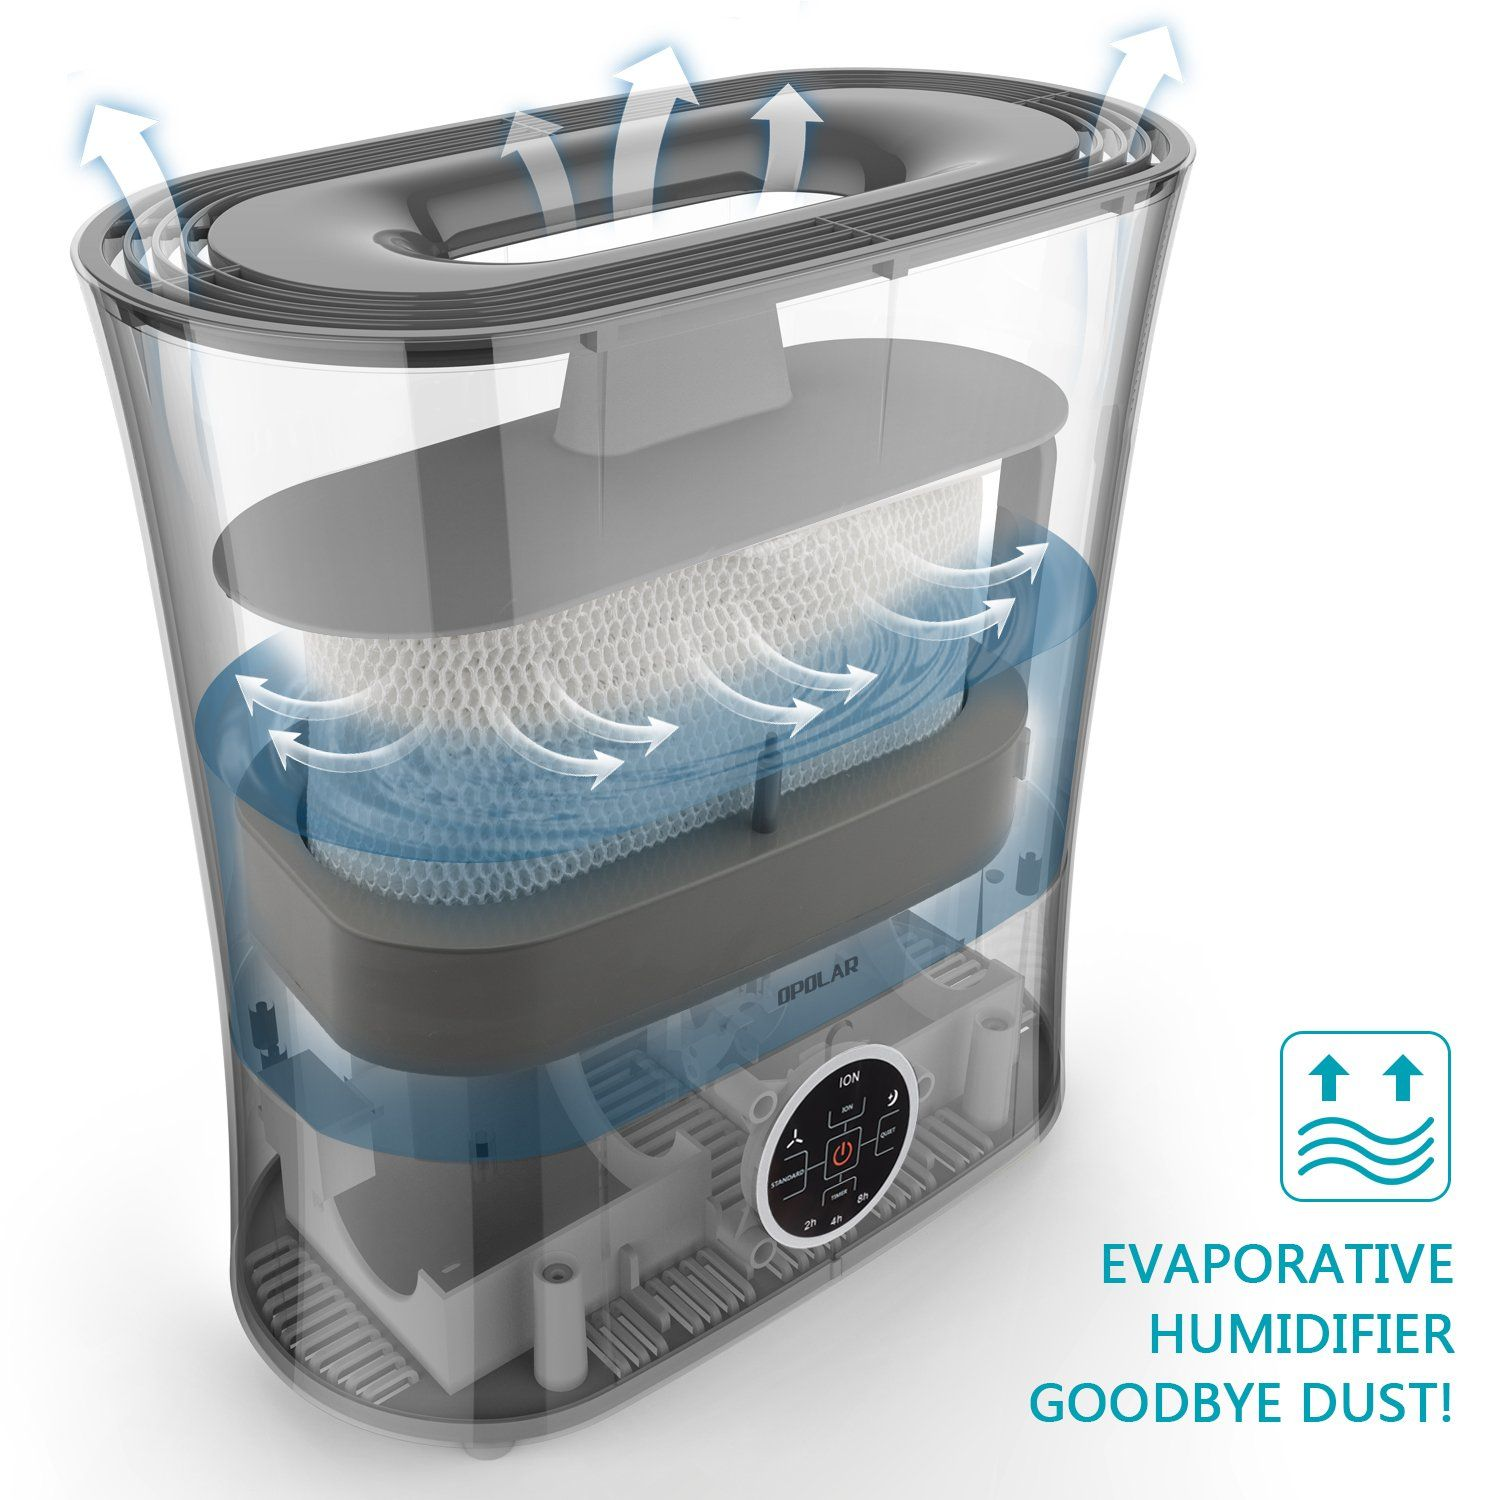 OPOLAR Evaporative Humidifier GermFree and Invisible